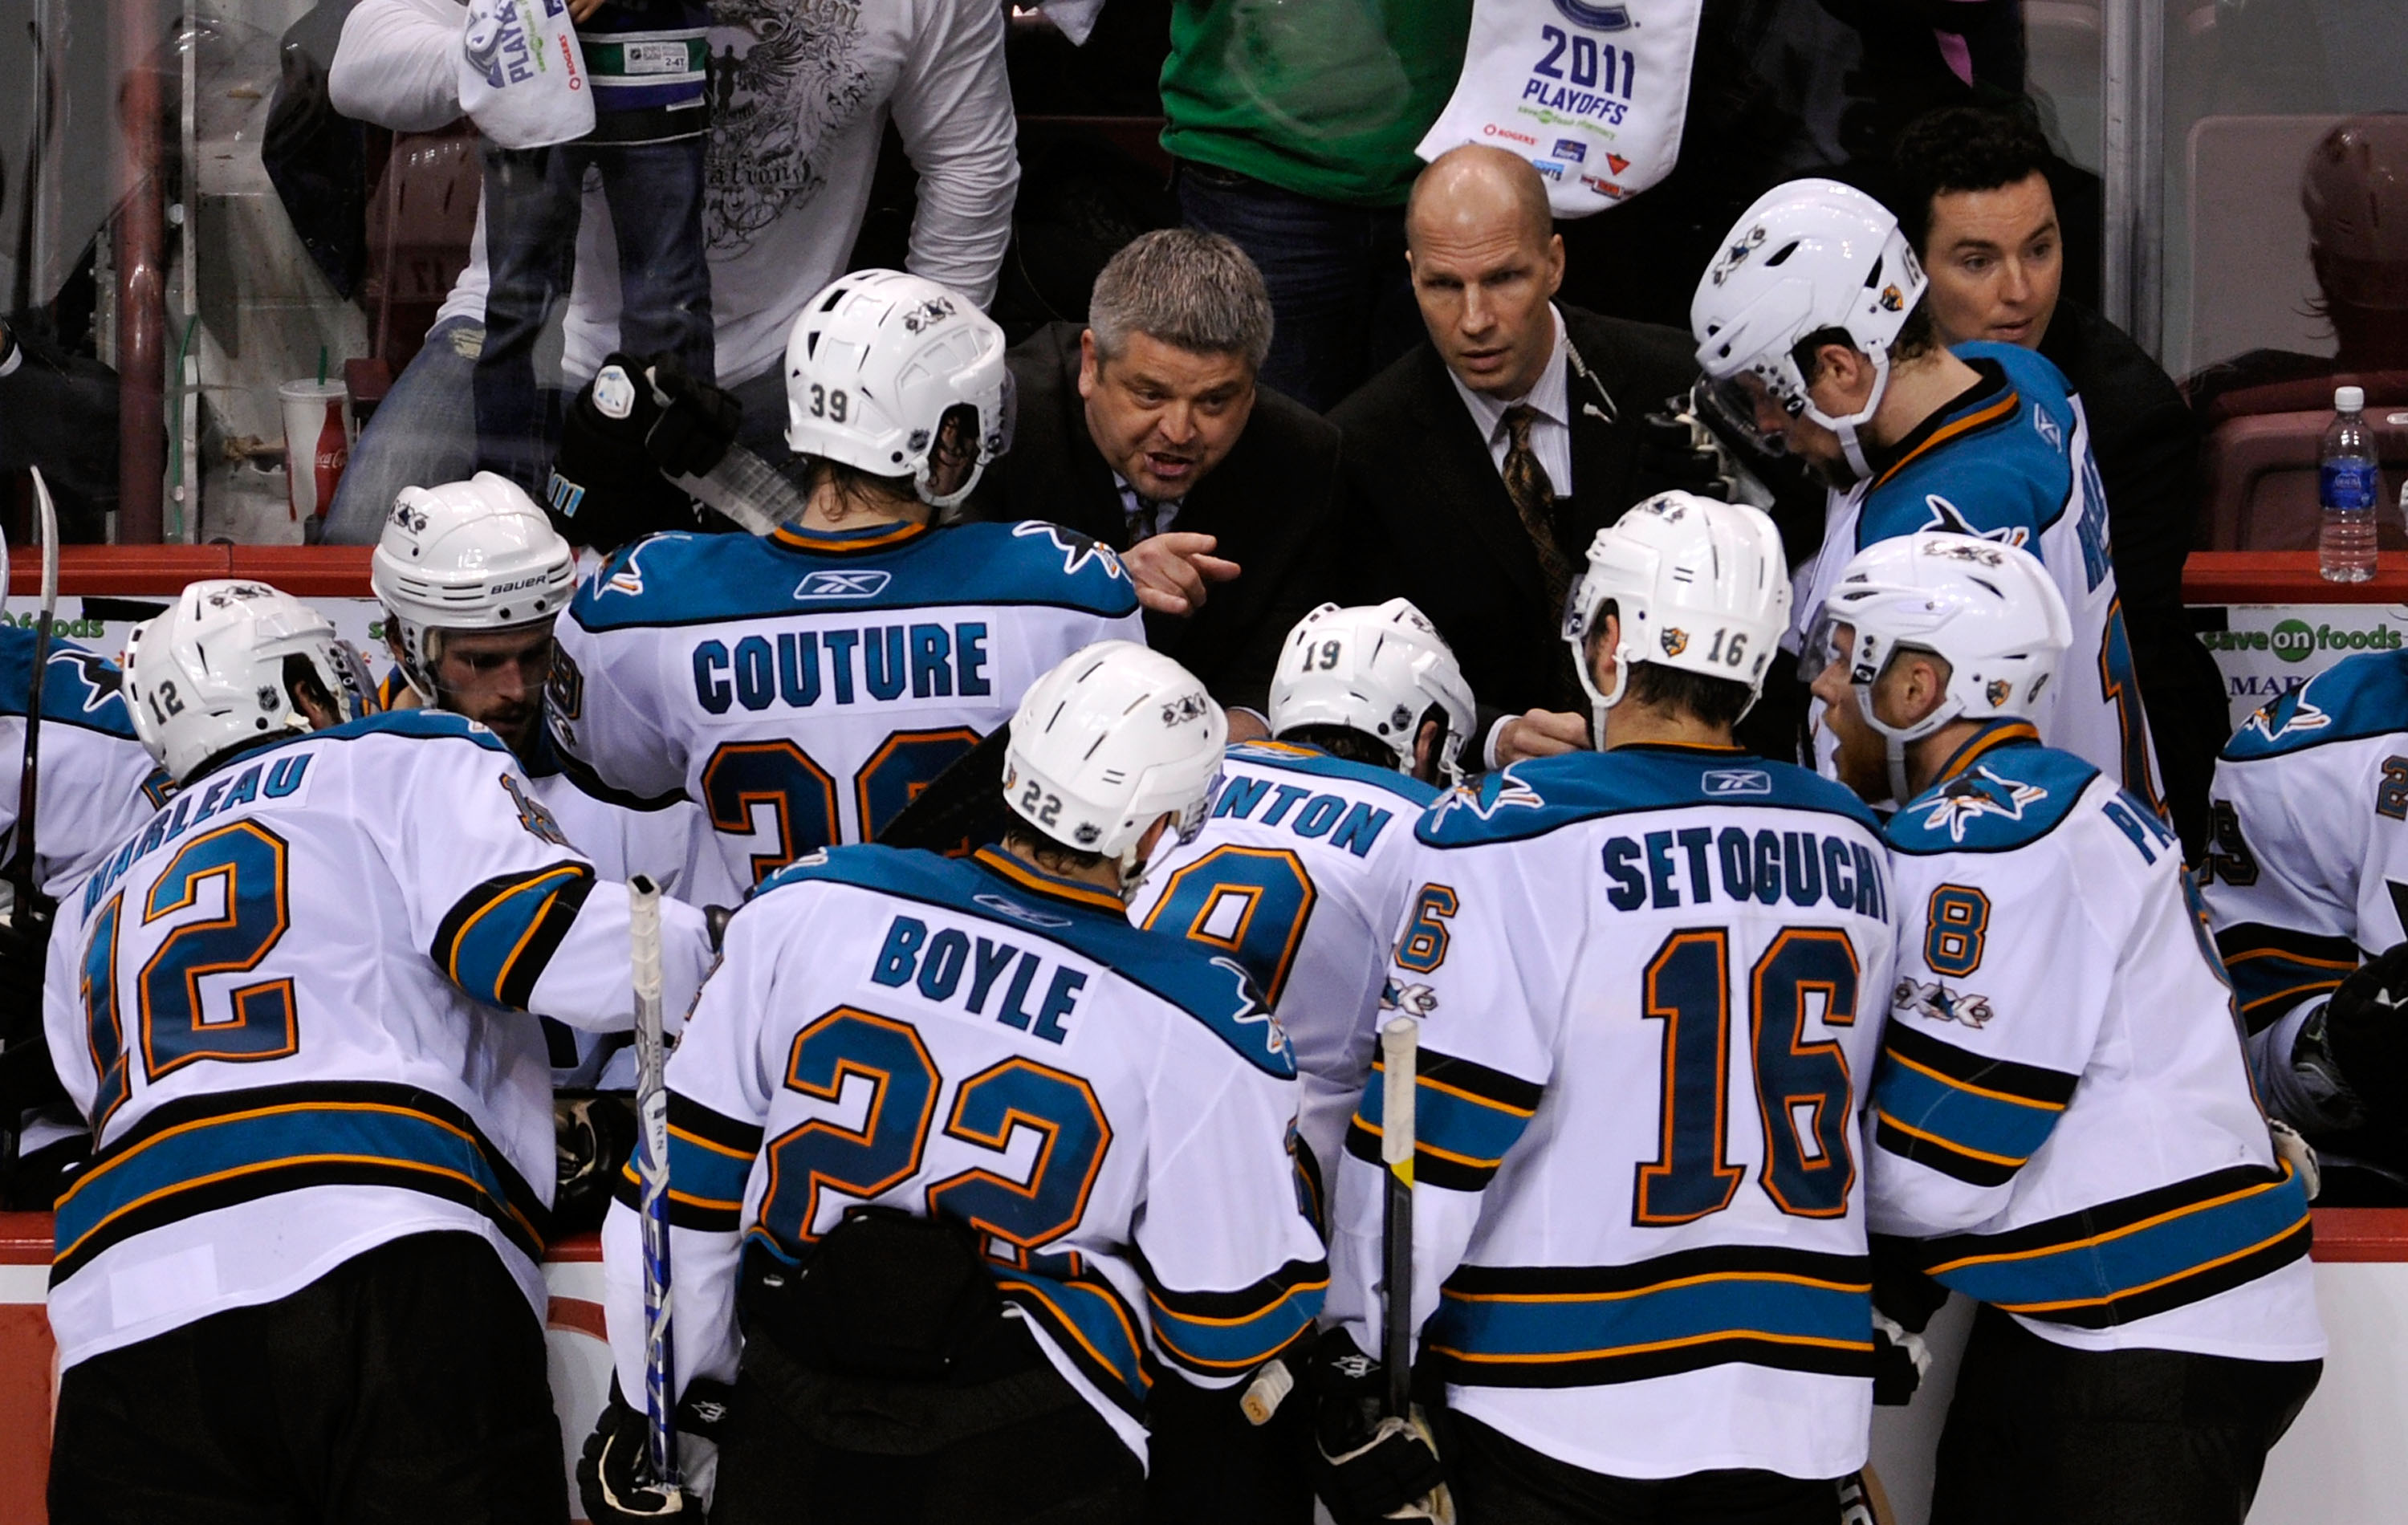 VANCOUVER, BC - MAY 15:  Head Coach Todd McLellan of the San Jose Sharks gives instructions to his players from the bench area in Game One of the Western Conference Finals against the Vancouver Canucks during the 2011 Stanley Cup Playoffs at Rogers Arena